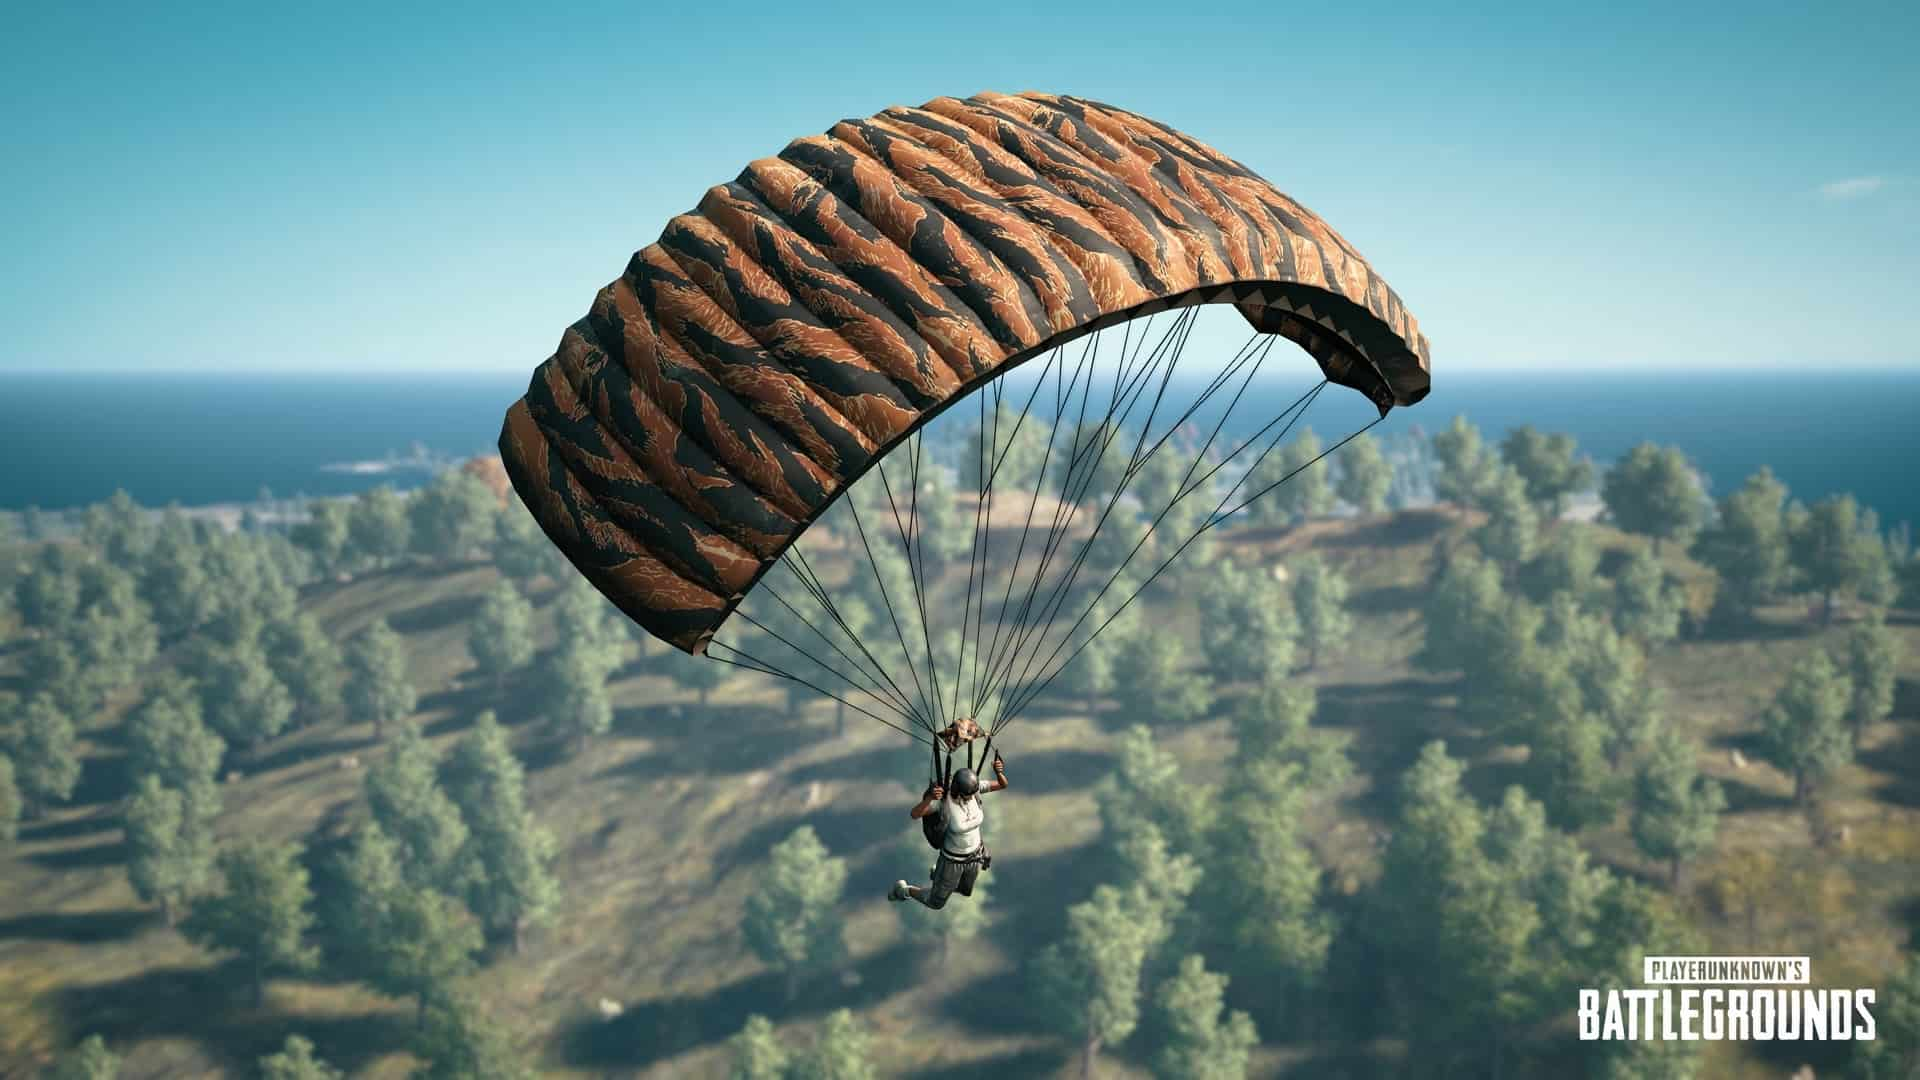 PUBG Update 13 Hits PC Test Server, Adds Parachute Skins & New Aviator Crate